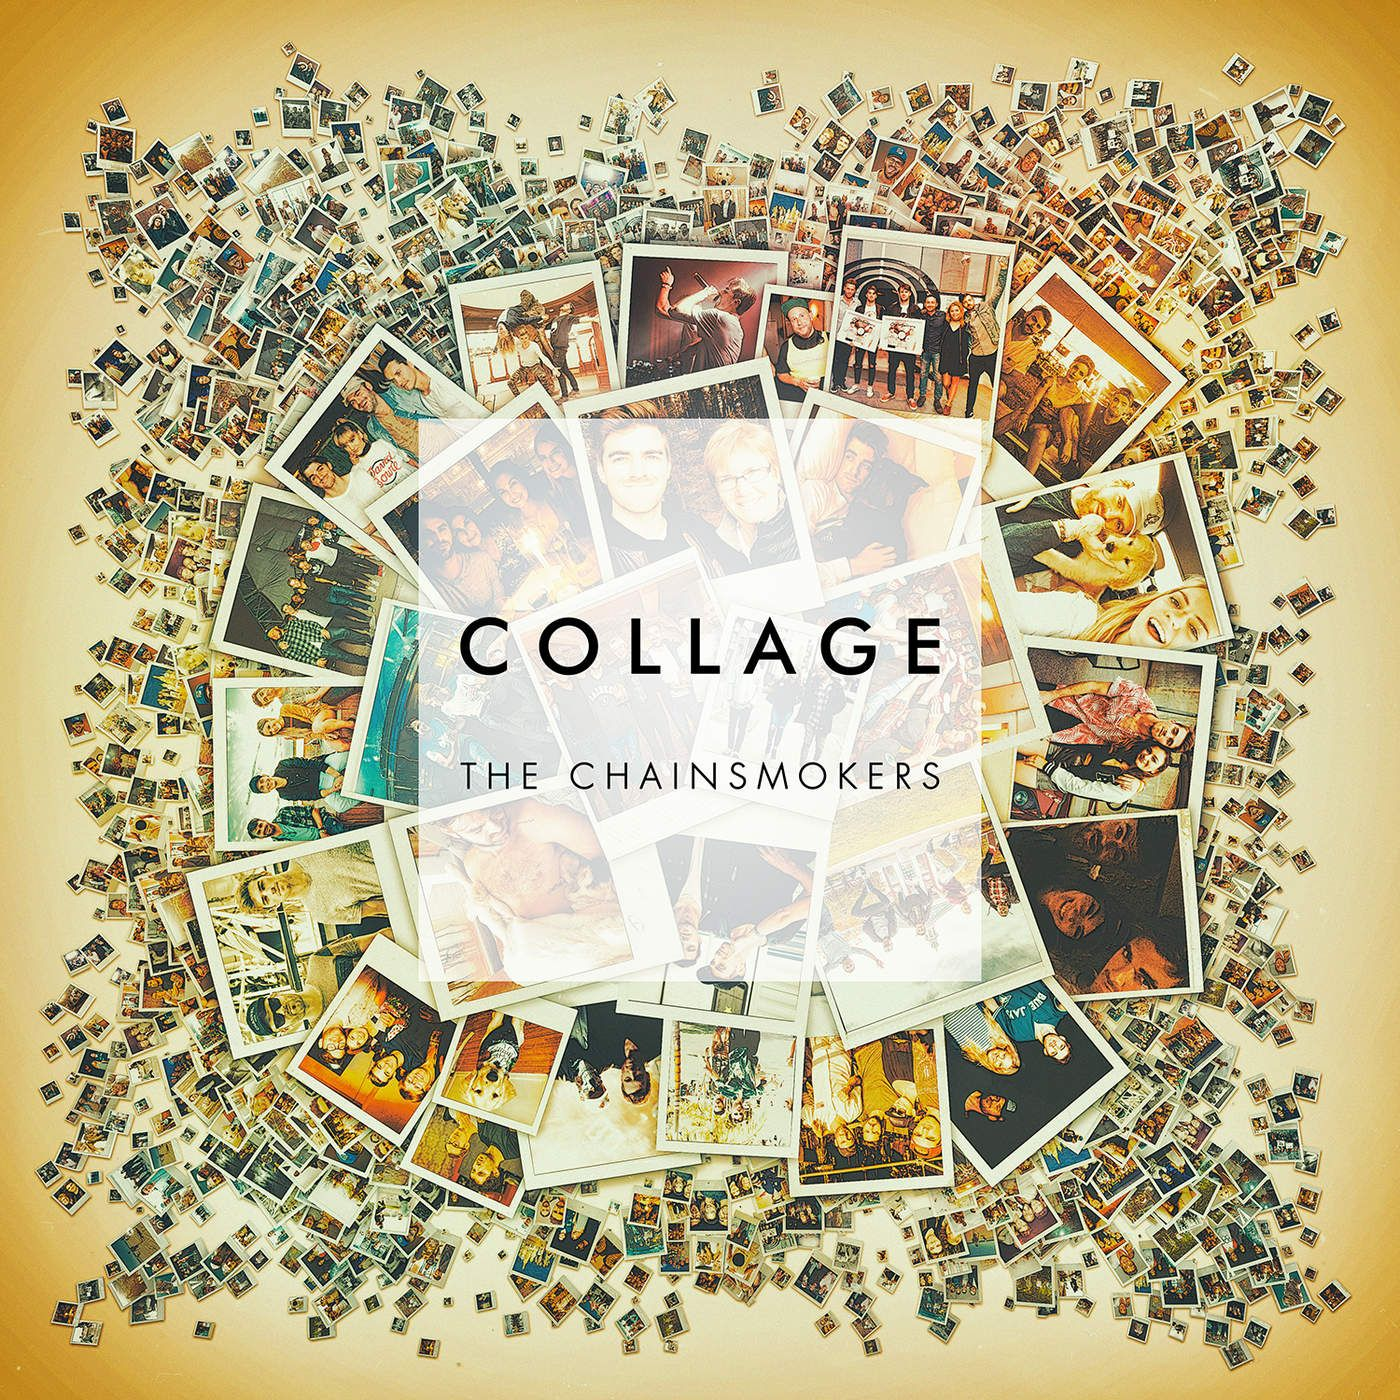 The Chainsmokers - Collage album cover